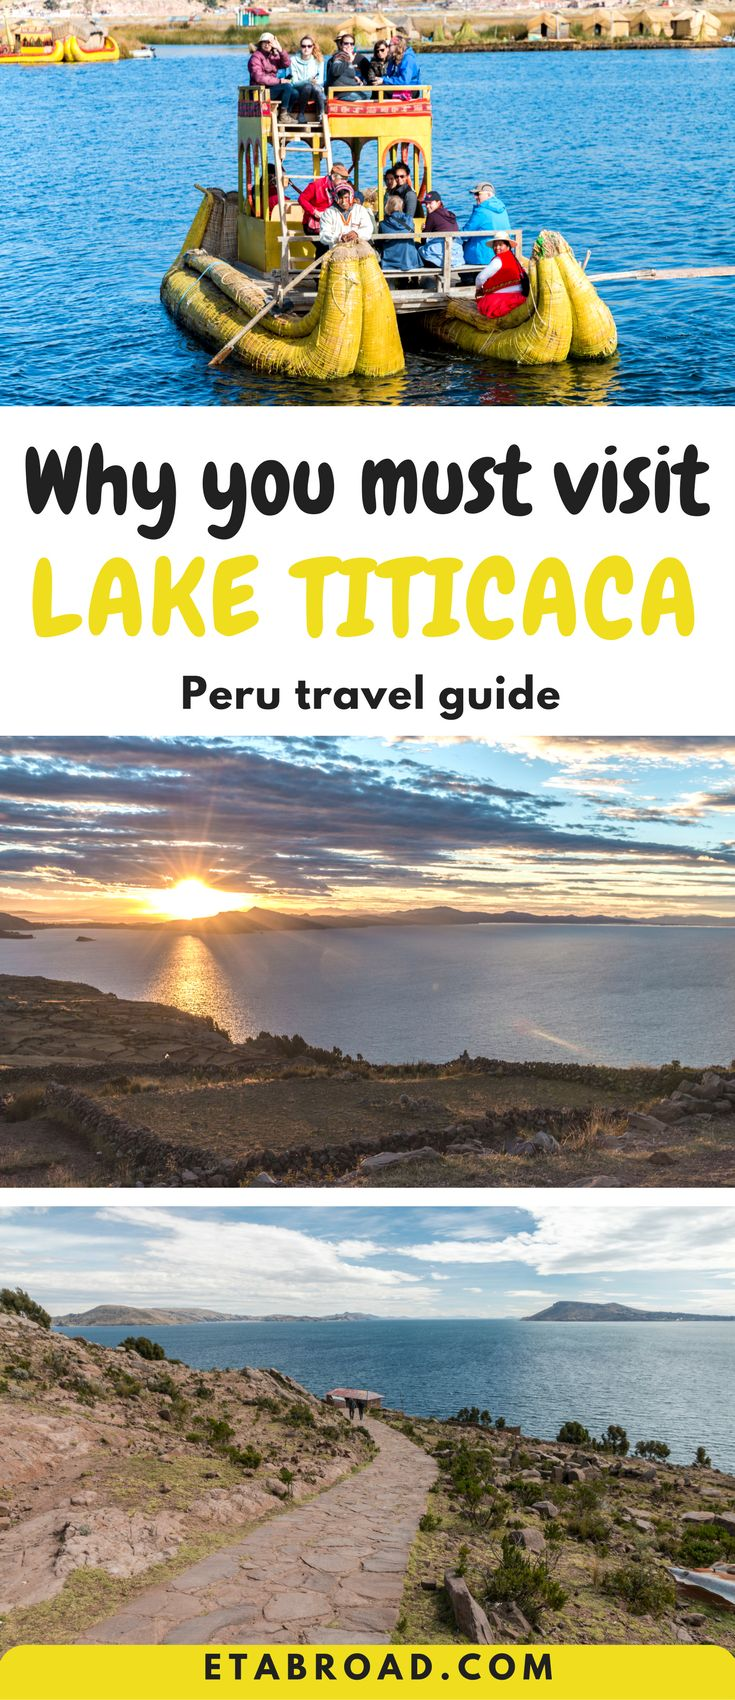 A trip from Puno to Lake Titicaca to floating islands and homestay is great. Everyone should do it. It's how traveler really touches the culture of Incas in Peru.